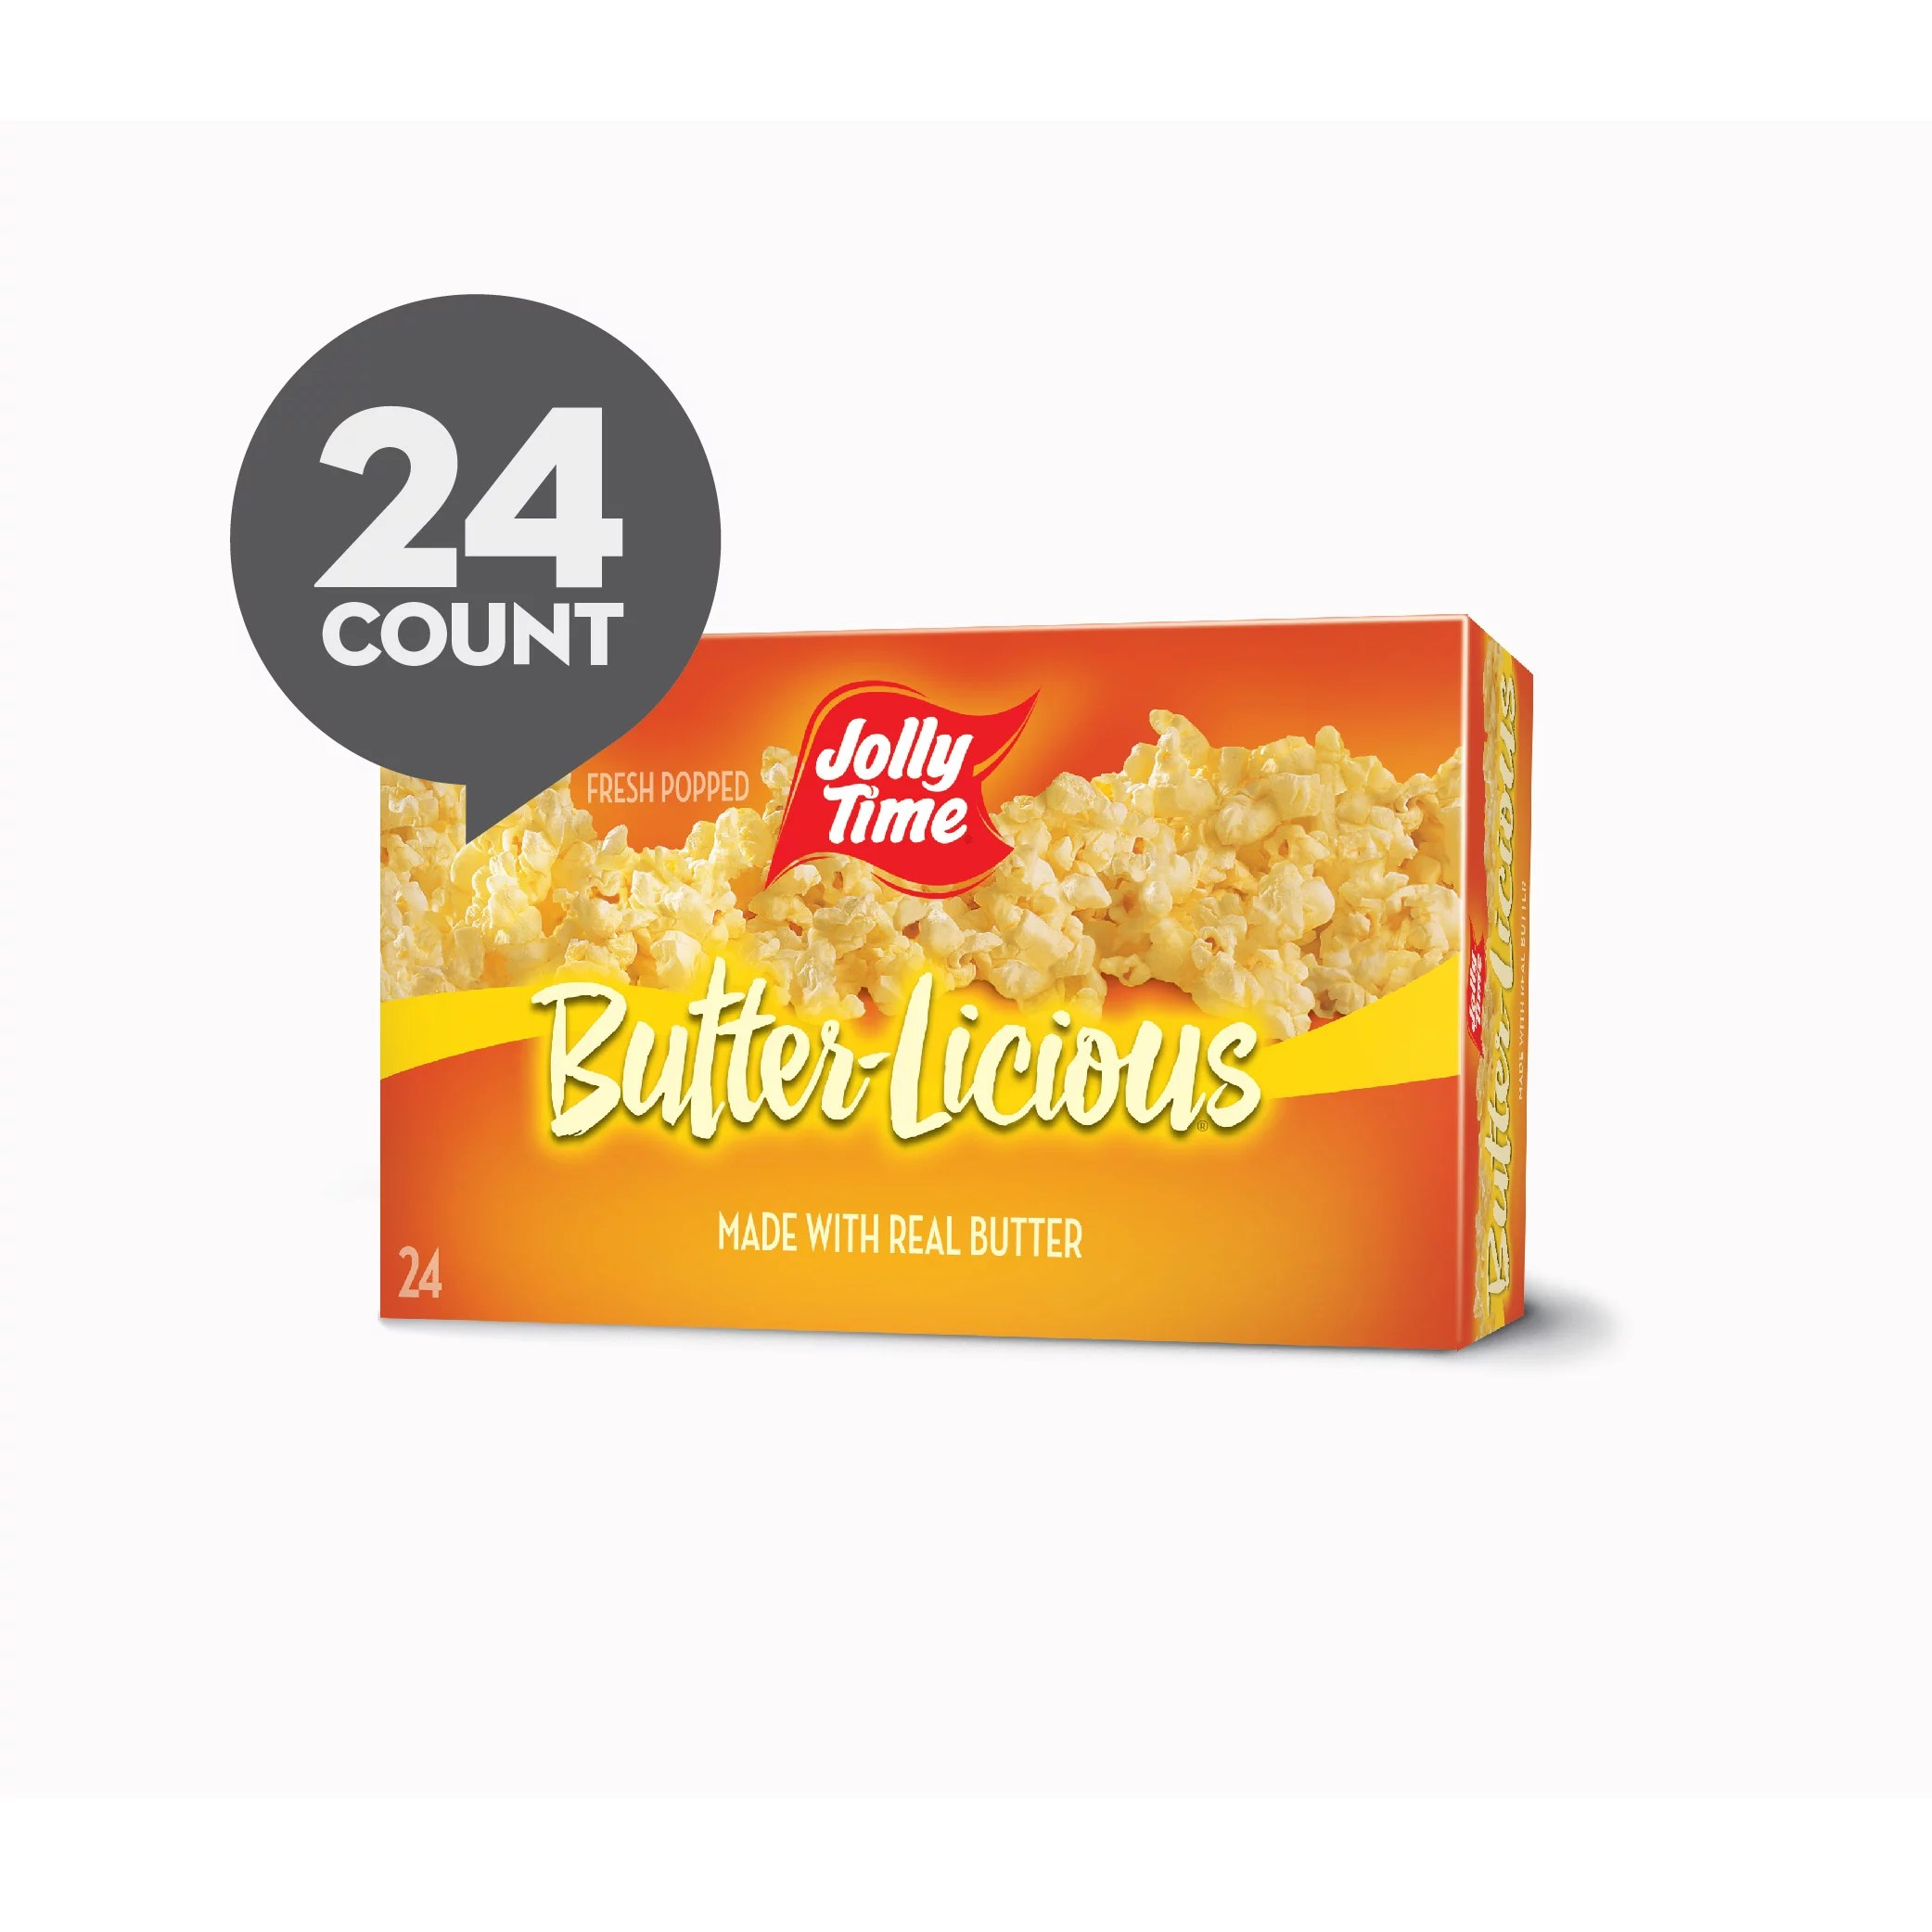 jolly time butter licious original buttery microwave popcorn snack gluten free with real buttered corn homestyle flavor 24 bags 3 oz each